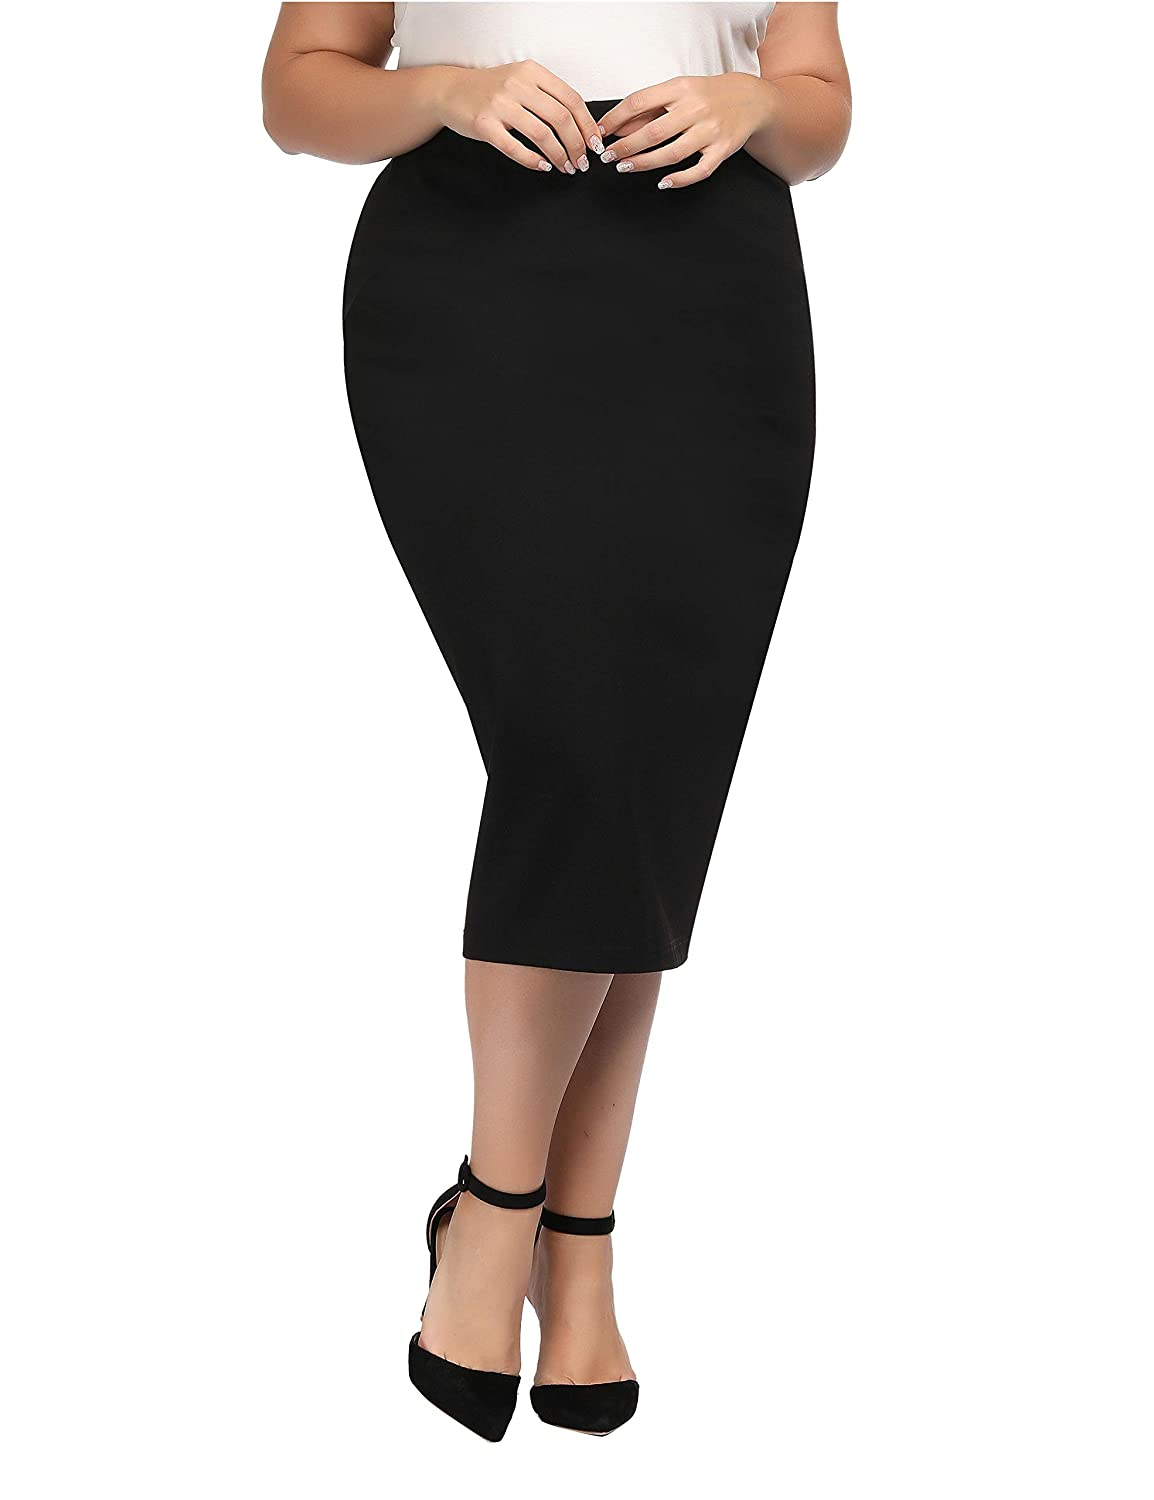 Womens Pencil Skirt Size 2x Sufficient Supply Skirts Women's Clothing